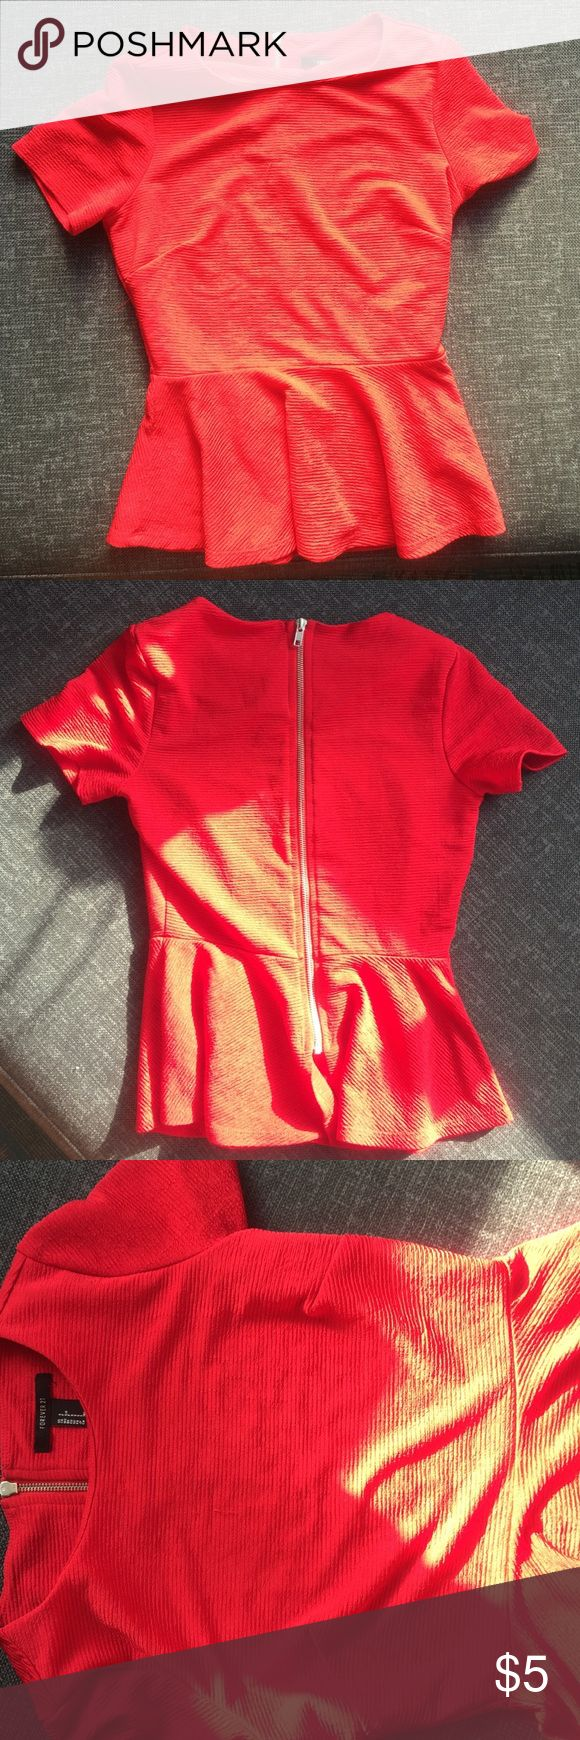 Red peplum top with zipper back Red peplum top. Exposed zipper back. Good condition Forever 21 Tops